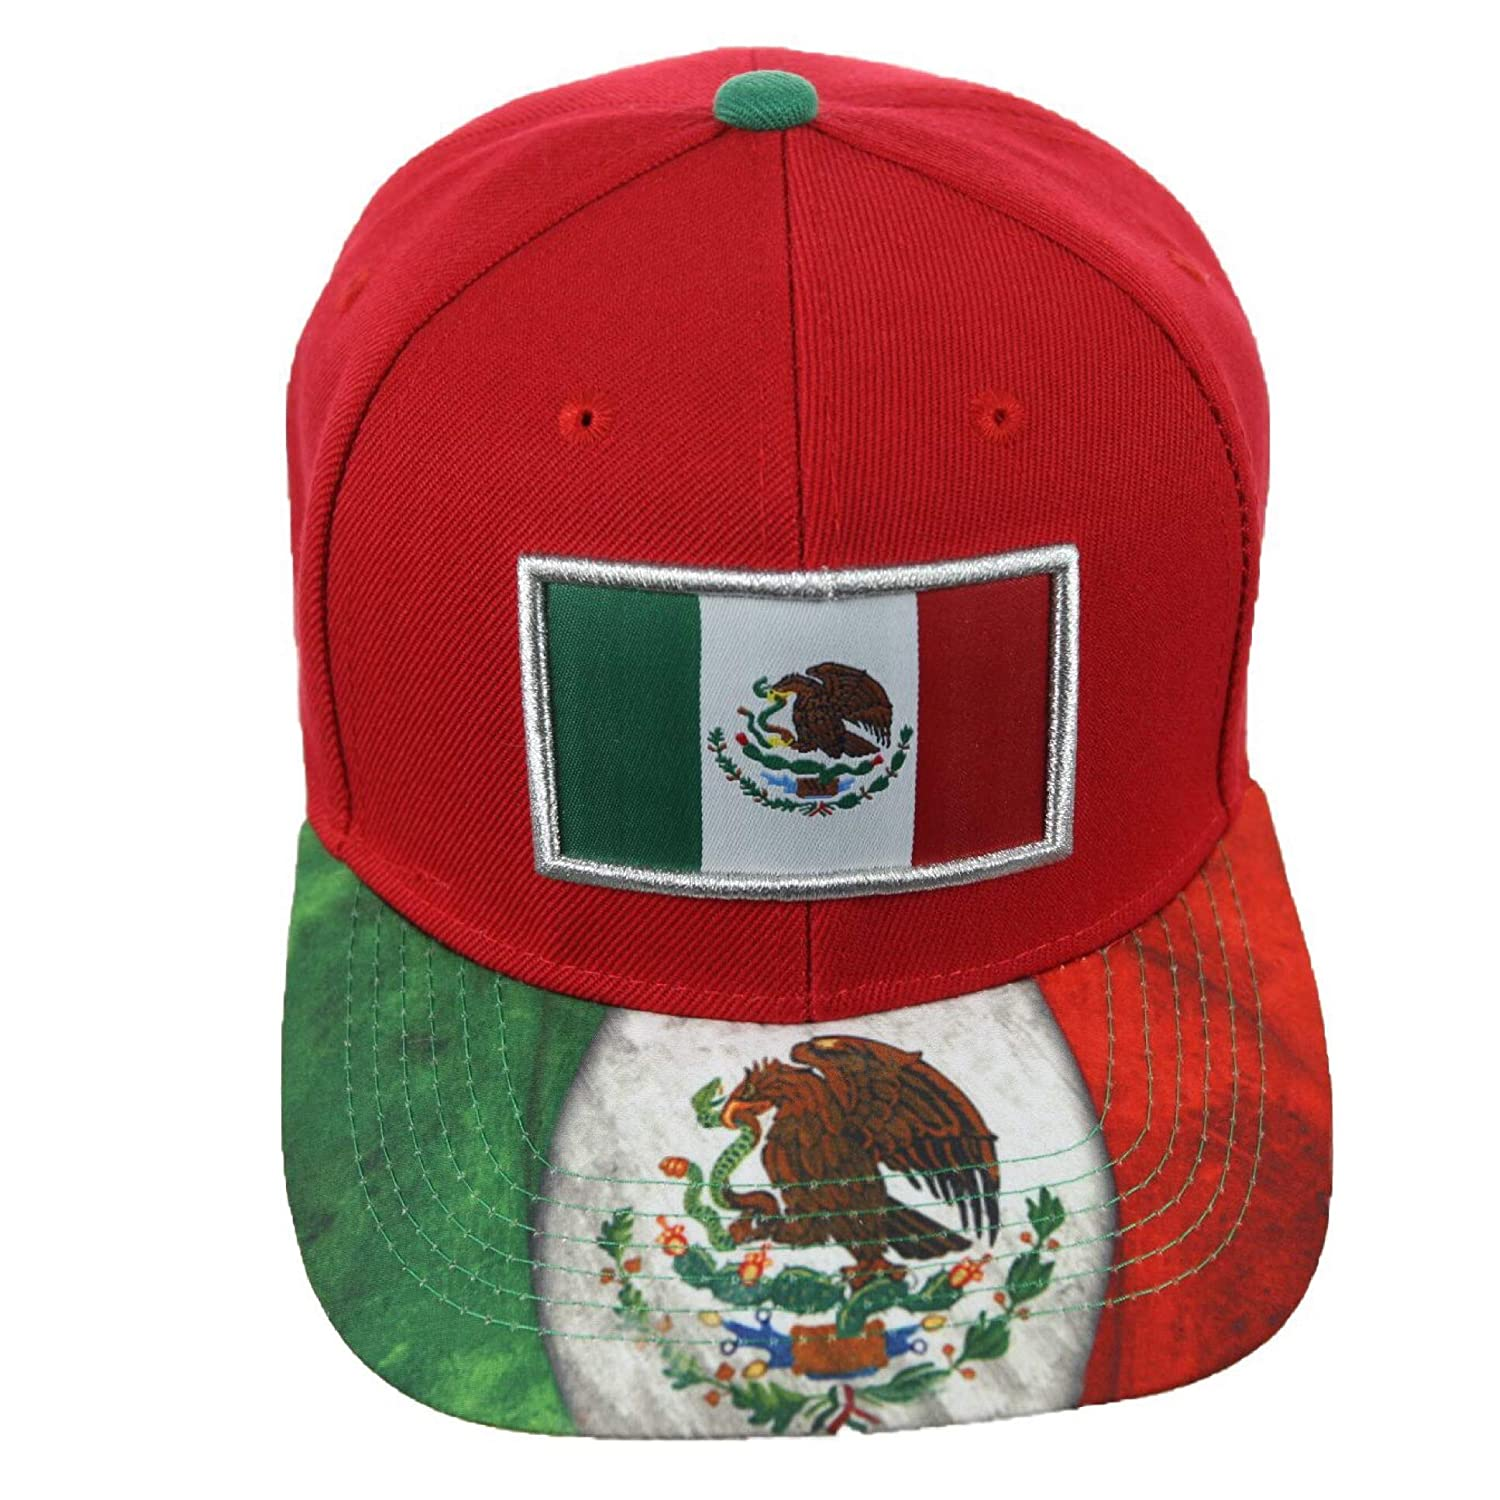 7cd4497e716 Baseball Cap Mexican Flag Mexico Eagle Hat Snapback Hats Casual Caps  (Black) at Amazon Men s Clothing store